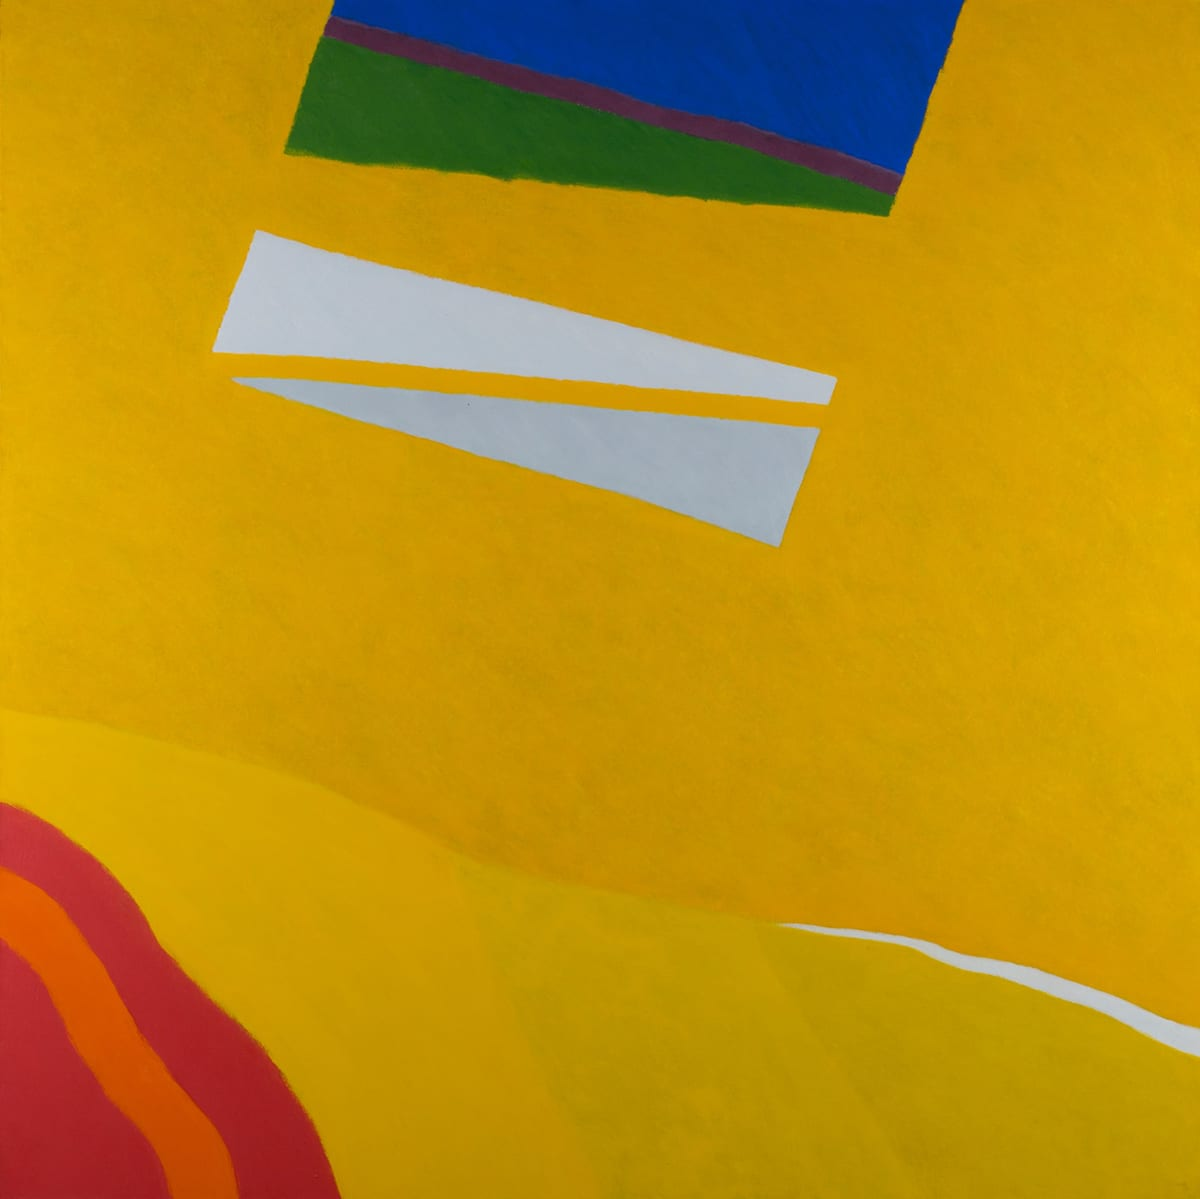 Consanguineous, Frank Okada, oil on canvas, 72 x 72 inches. A square abstract painting featuring bold colors on a largely deep yellow ground. The lower left corner holds an arc of undulating stripes that dip slightly in their center. The stripes alternate from vivid red to orange then back to red again. A rectangular shape composed of trapezoidal shapes and stripes juts downward into the center space from the top center. The rectangle sits at an angle slanted to the left. It begins with a brilliant blue at the middle top of the painting followed by a thin stripe of deep red, then a dark olive-green trapezoid. A golden yellow that matches the background color follows, forming another trapezoid. It is followed by a cream trapezoid separated by narrow golden yellow stripe from a pale gray trapezoid shape. The textured golden yellow ground is bisected horizontally two thirds of the way down from the top. The upper portion of the painting is the largest segment with the bottom third containing the red and orange arc and three more golden yellow segments. The segments differ slightly in hue. The lightest is at left next to the red/orange arc. The remaining two segments continue to the right with a thin, sharp uneven streak of cream interrupting the yellow ground from the lower right edge. Brushstrokes are clearly visible with the edges of the shapes being slightly ragged and uneven.